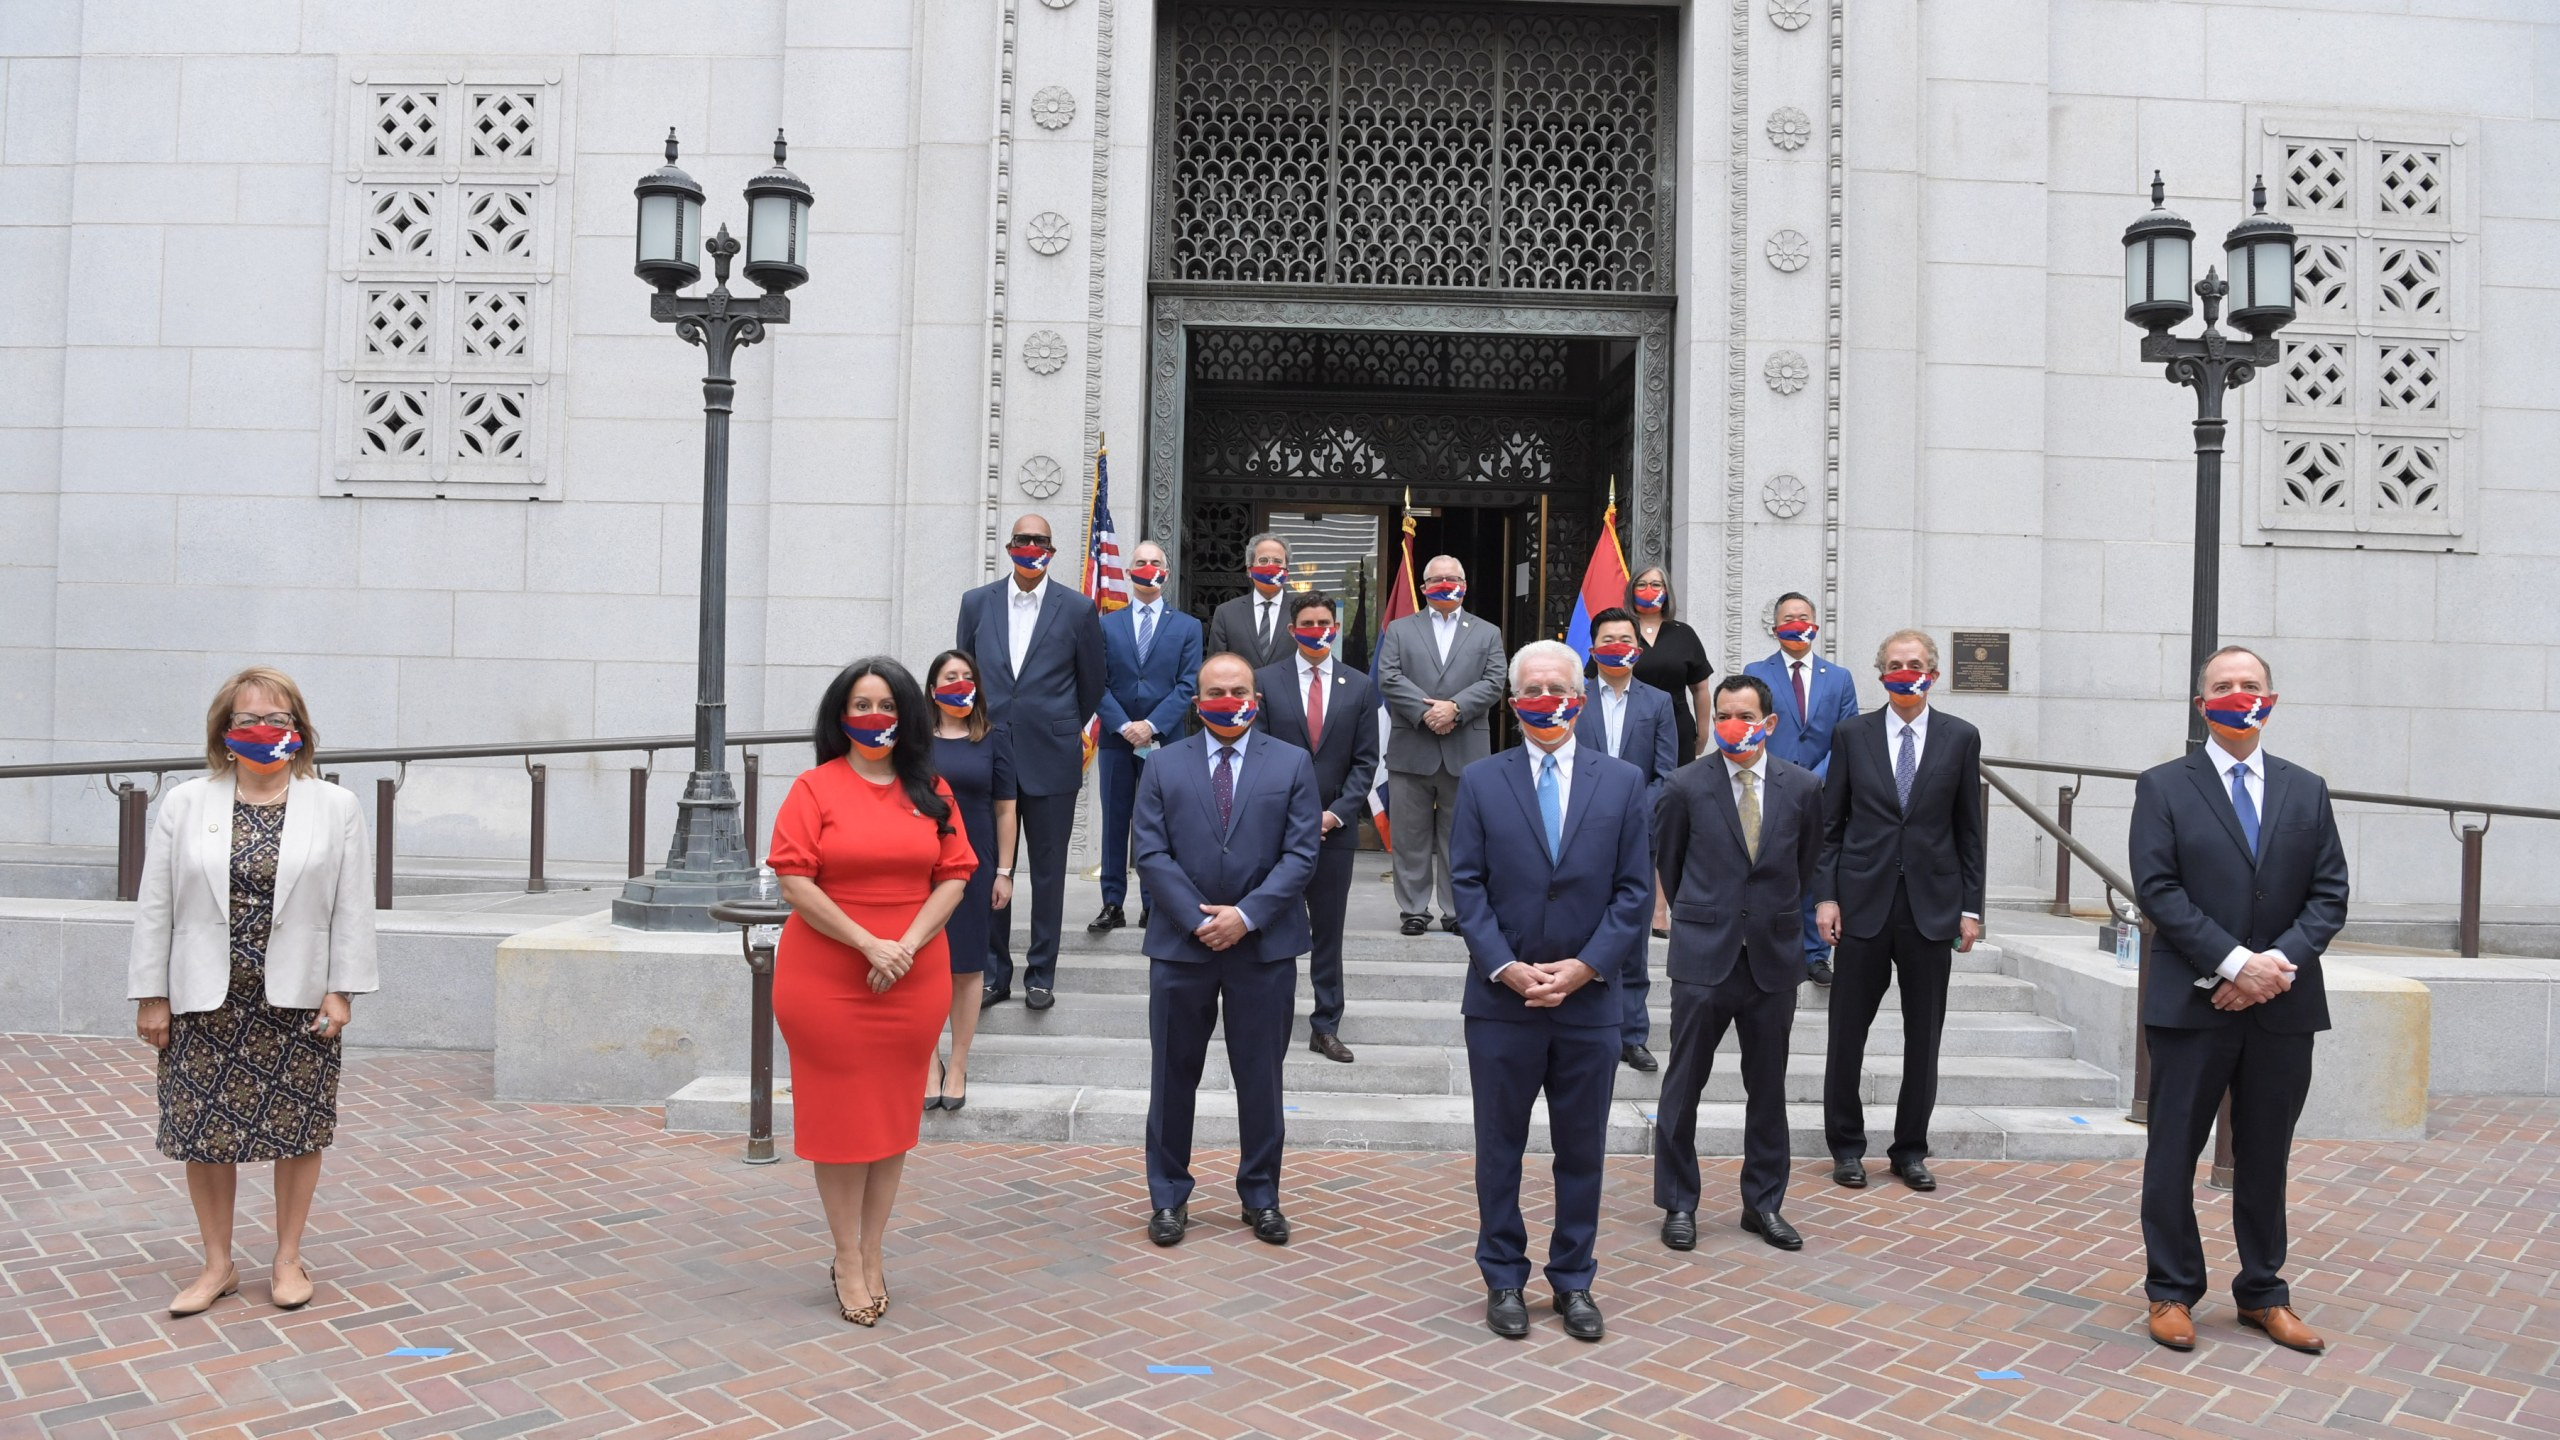 Los Angeles leaders gathered on Oct. 5, 2020, at City Hall to call for peace in Nagorno-Karabakh. (Paul Krekorian)